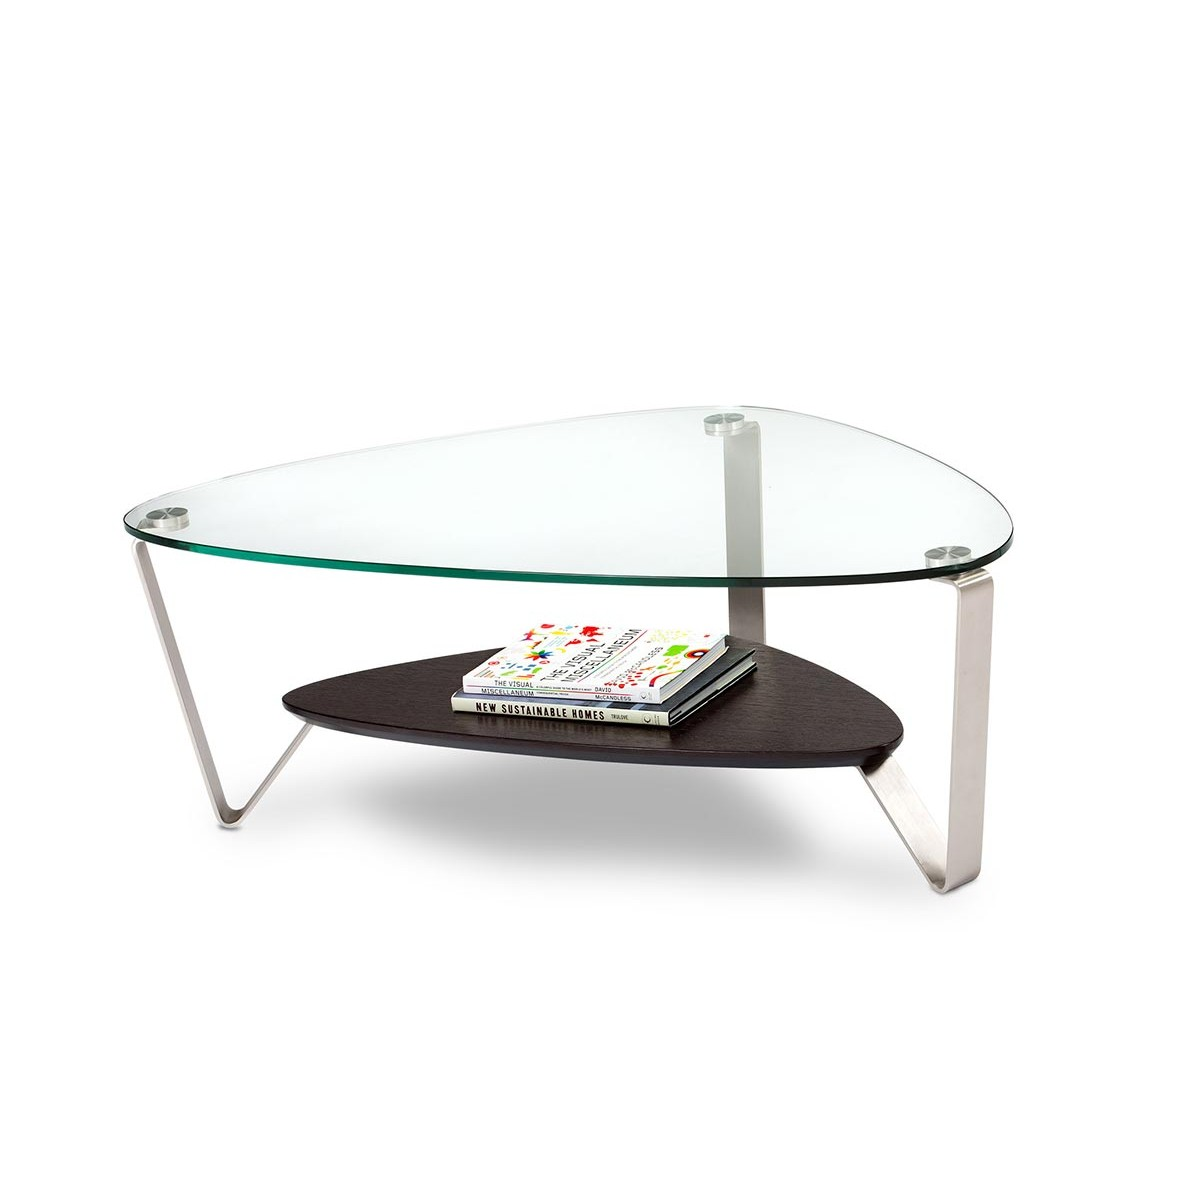 accent tables living furniture danco modern just bdi dino espresso coffee table white how met your mother umbrella outdoor light bulbs solid oak threshold inch pub marble dining